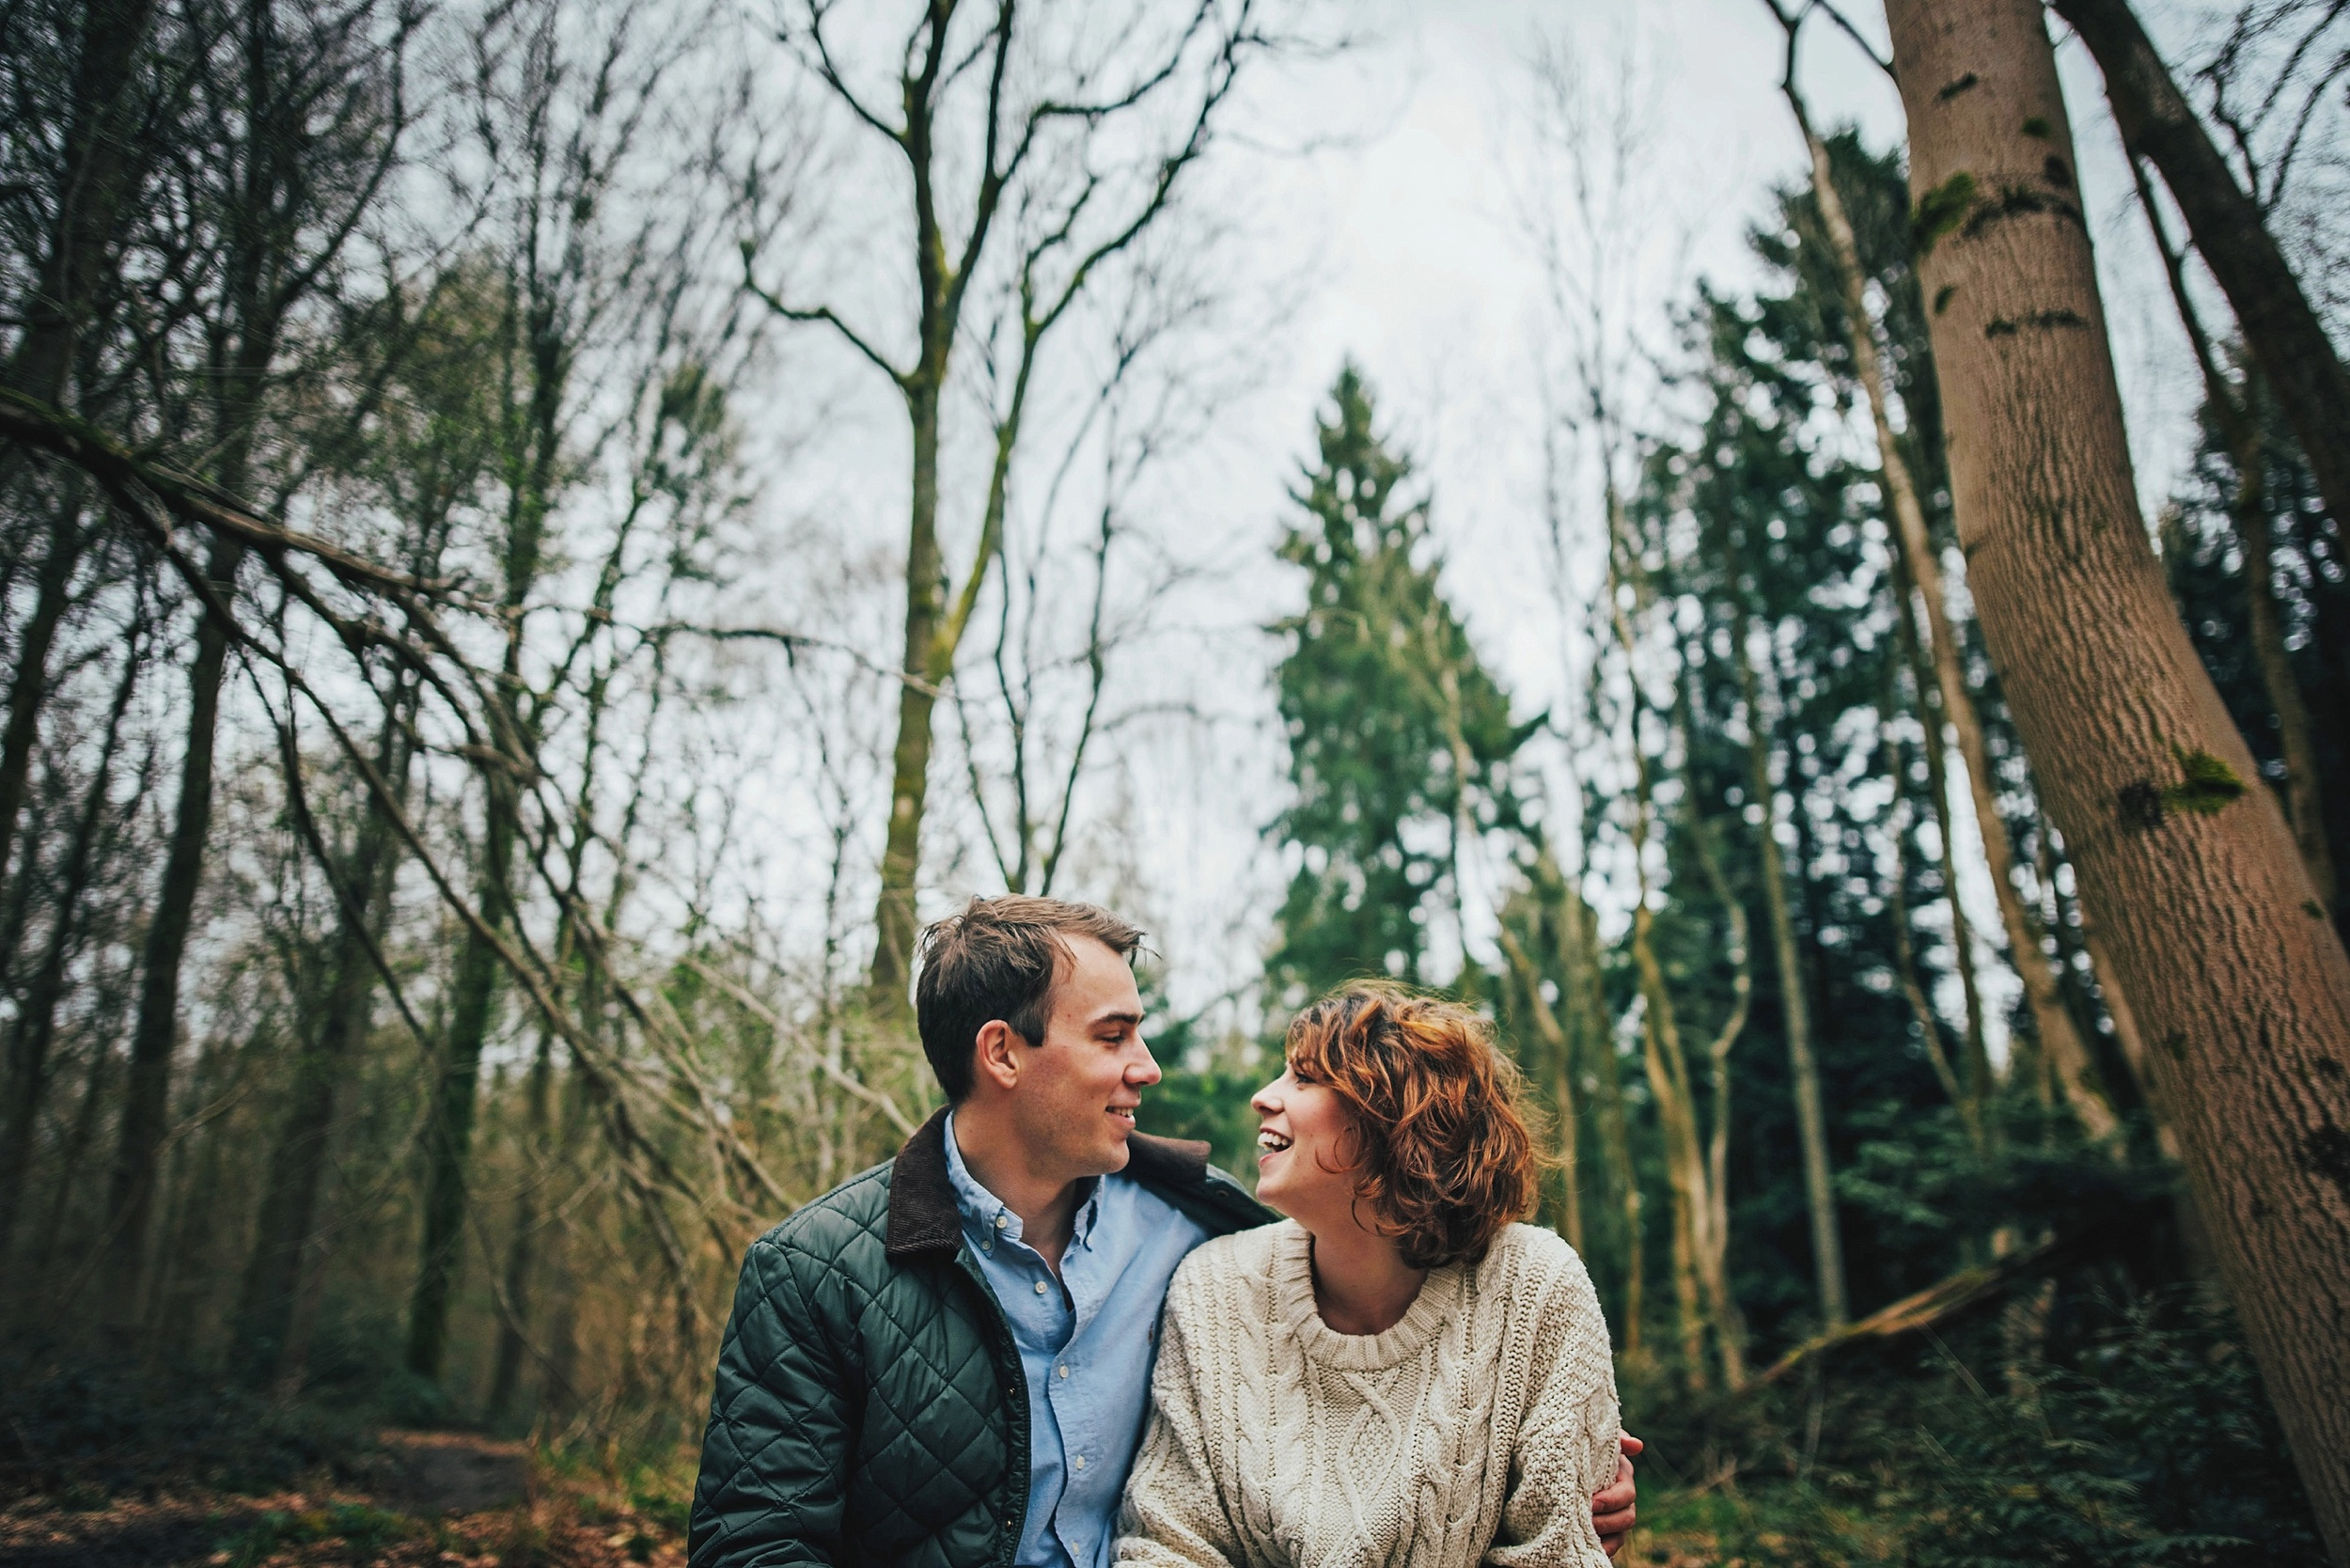 Love Shoot Couples Portraits Candover Woods Essex UK Documentary Portrait and Lifestyle Photographer